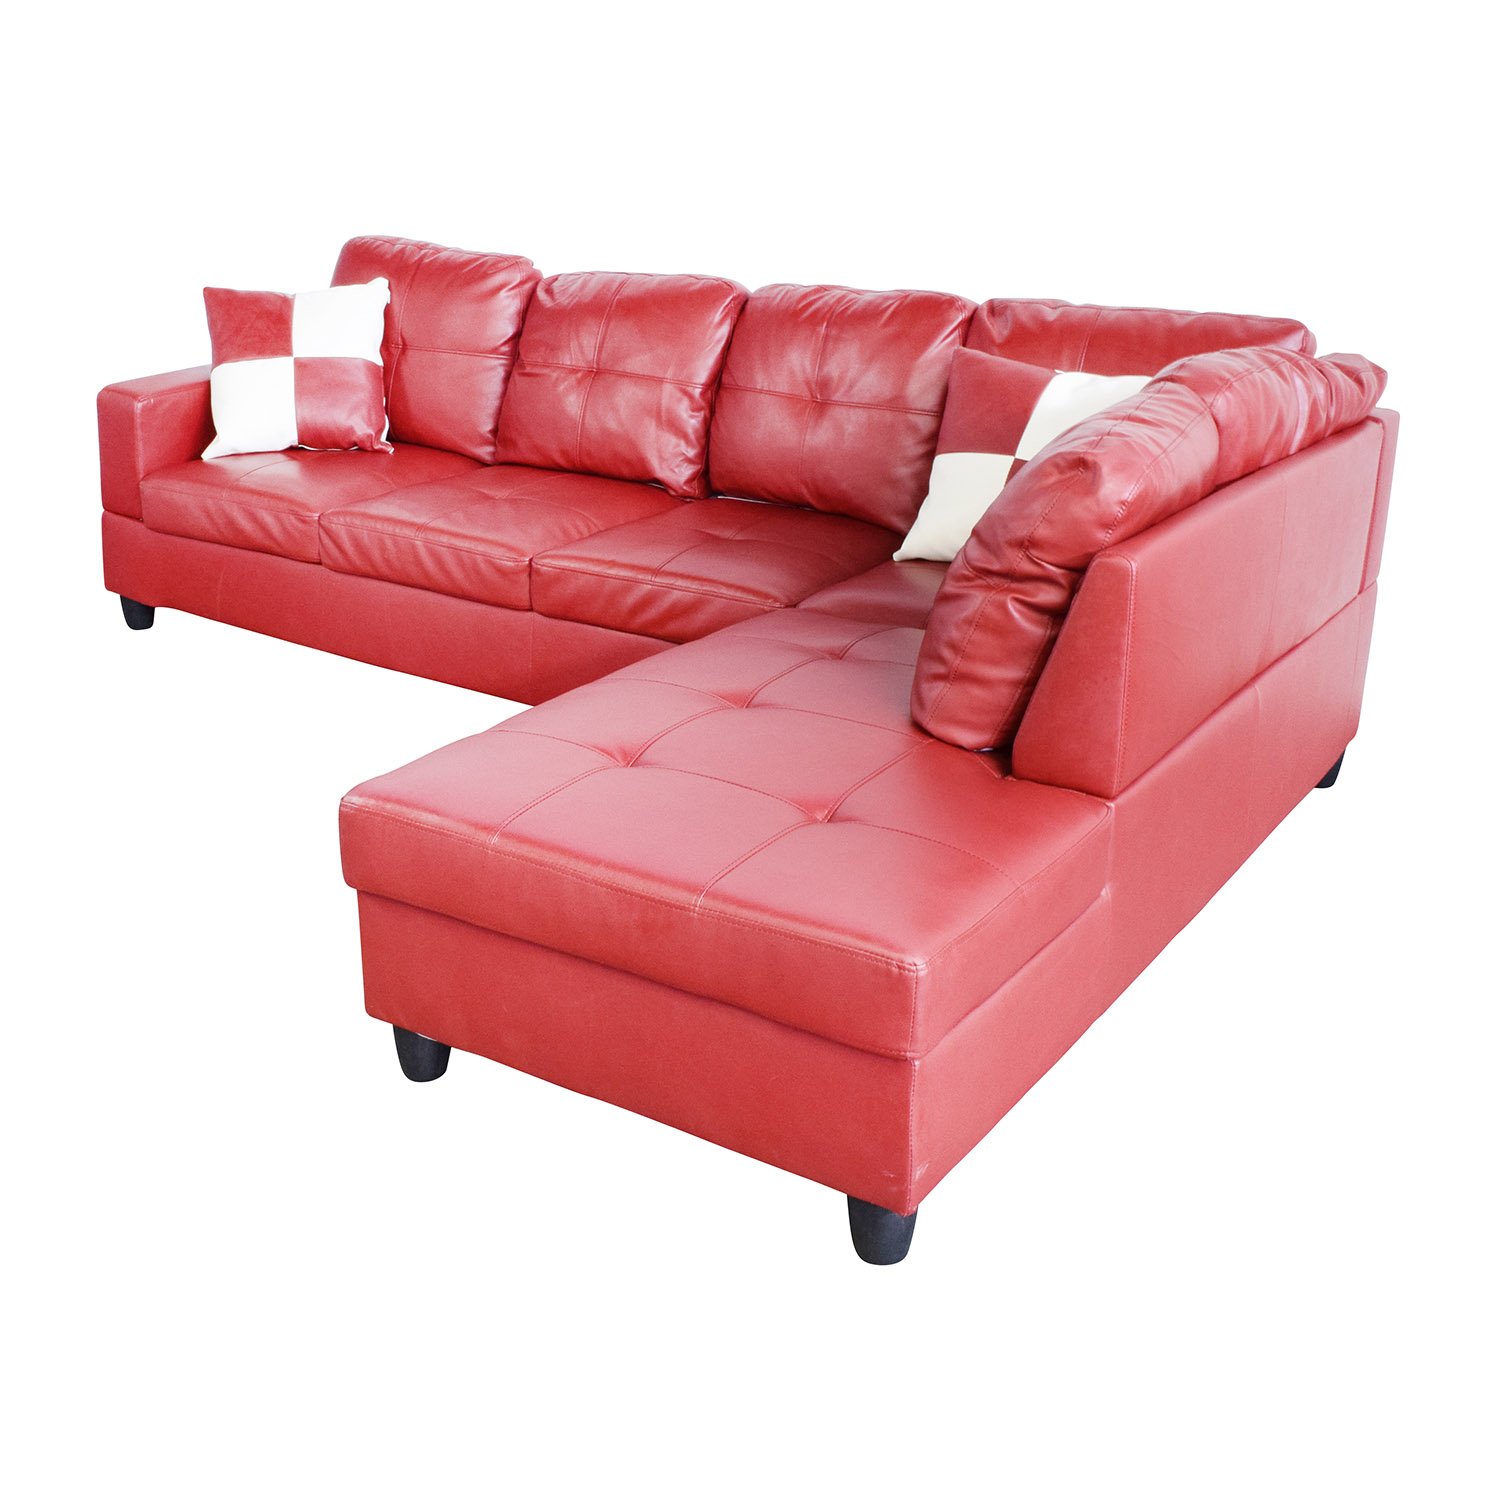 76 off beverly furniture beverly furniture red faux leather sectional sofas. Black Bedroom Furniture Sets. Home Design Ideas